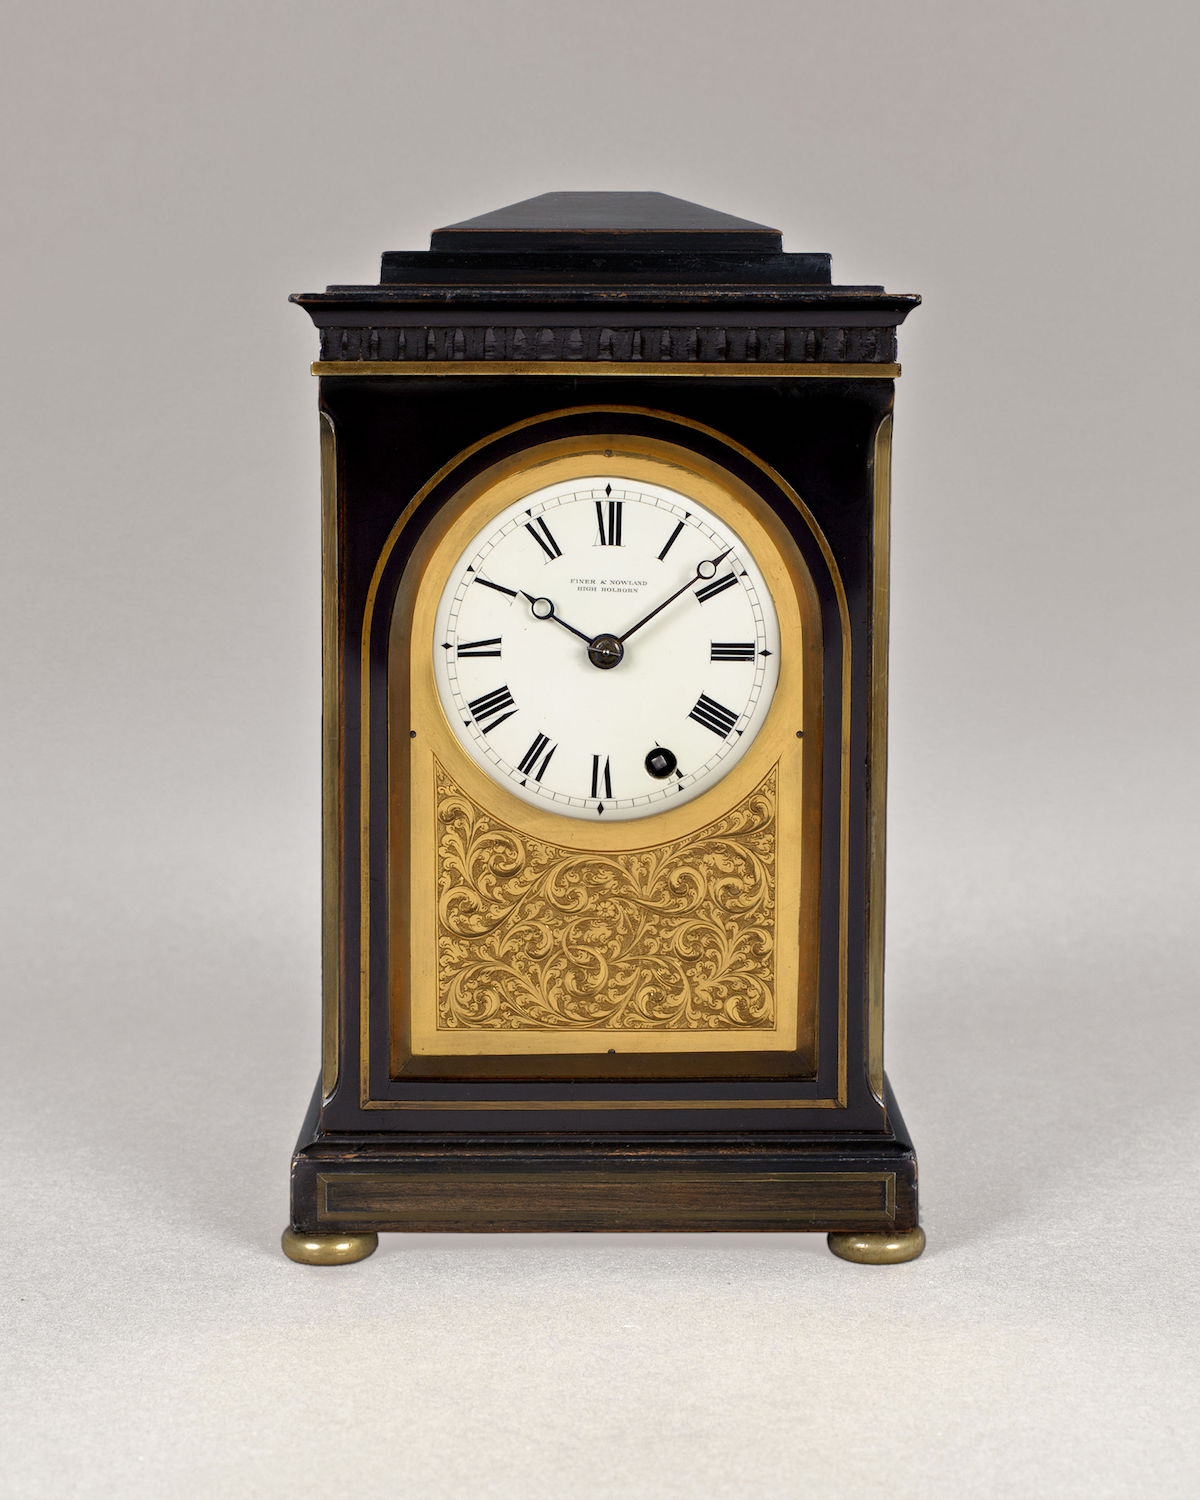 FINER & NOWLAND, HIGH HOLBORN. A FINE AND SMALL REGENCY PERIOD TIMEPIECE IN AN EBONISED CHAMFER TOP CASE.